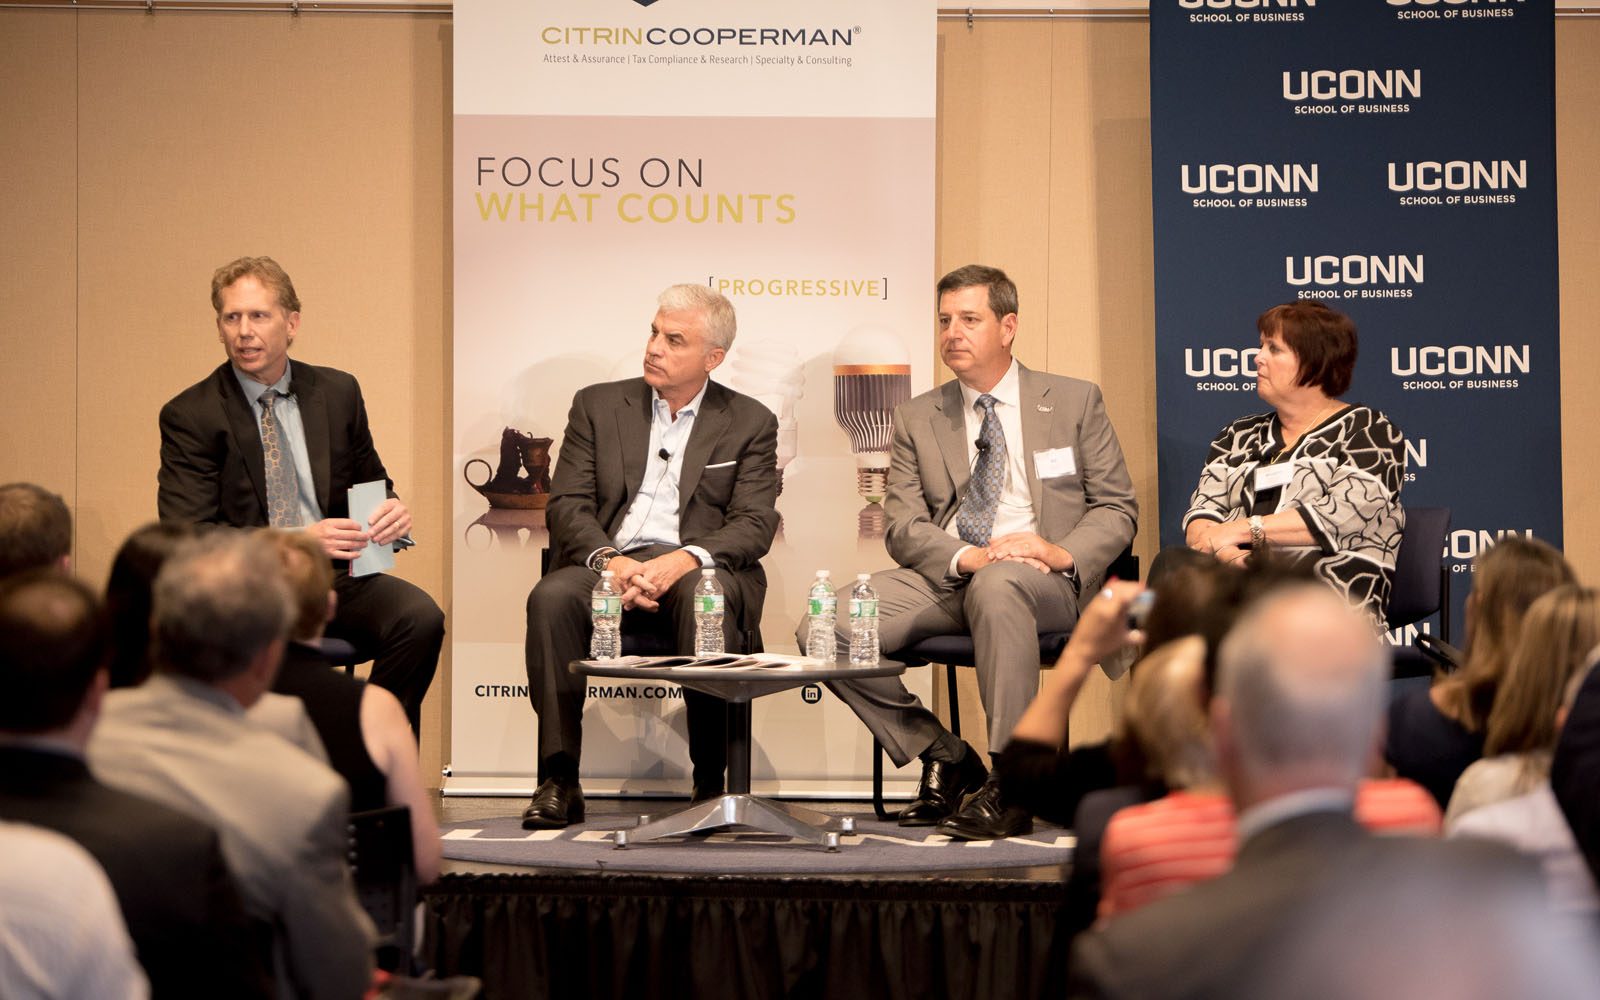 Three Top Executives Share Business Advice, Values at 'CEO Evolution' Program in Stamford